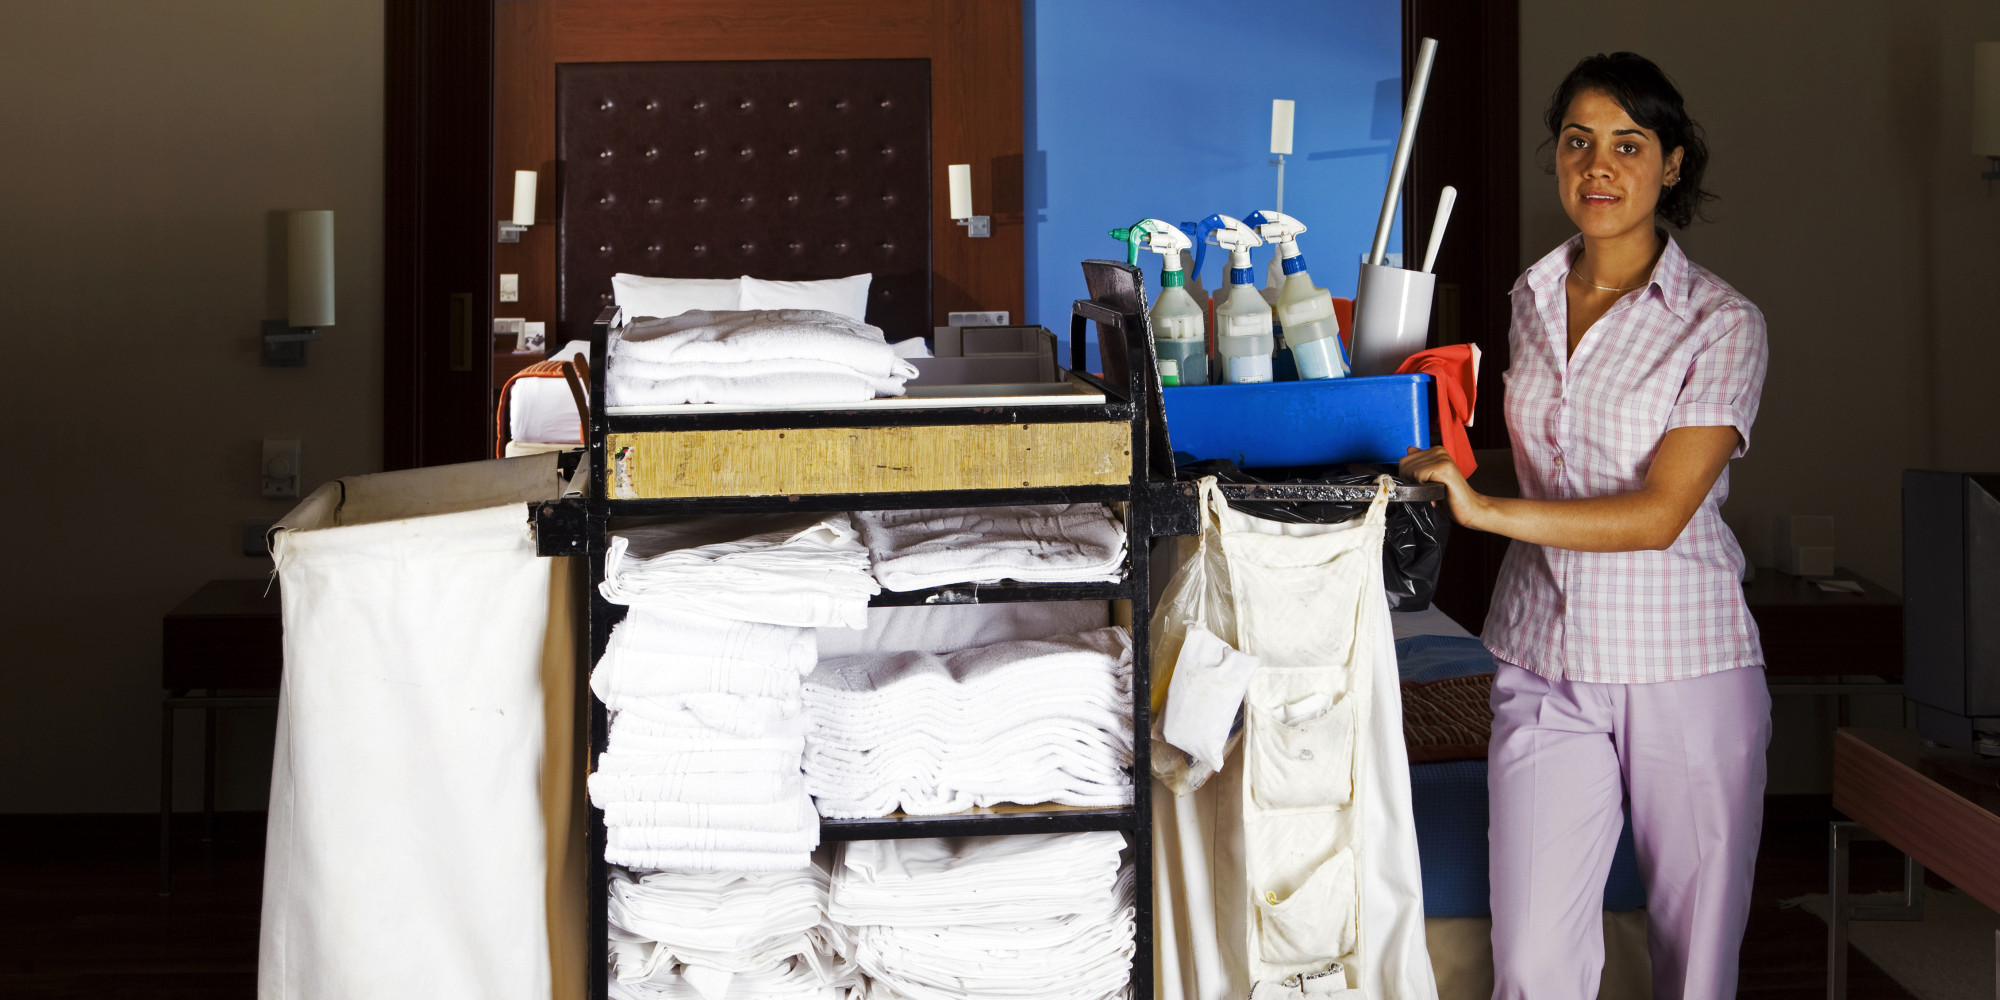 Target Floor Cleaners Dirty Hotels: 6 Germ Hotspots To Worry About